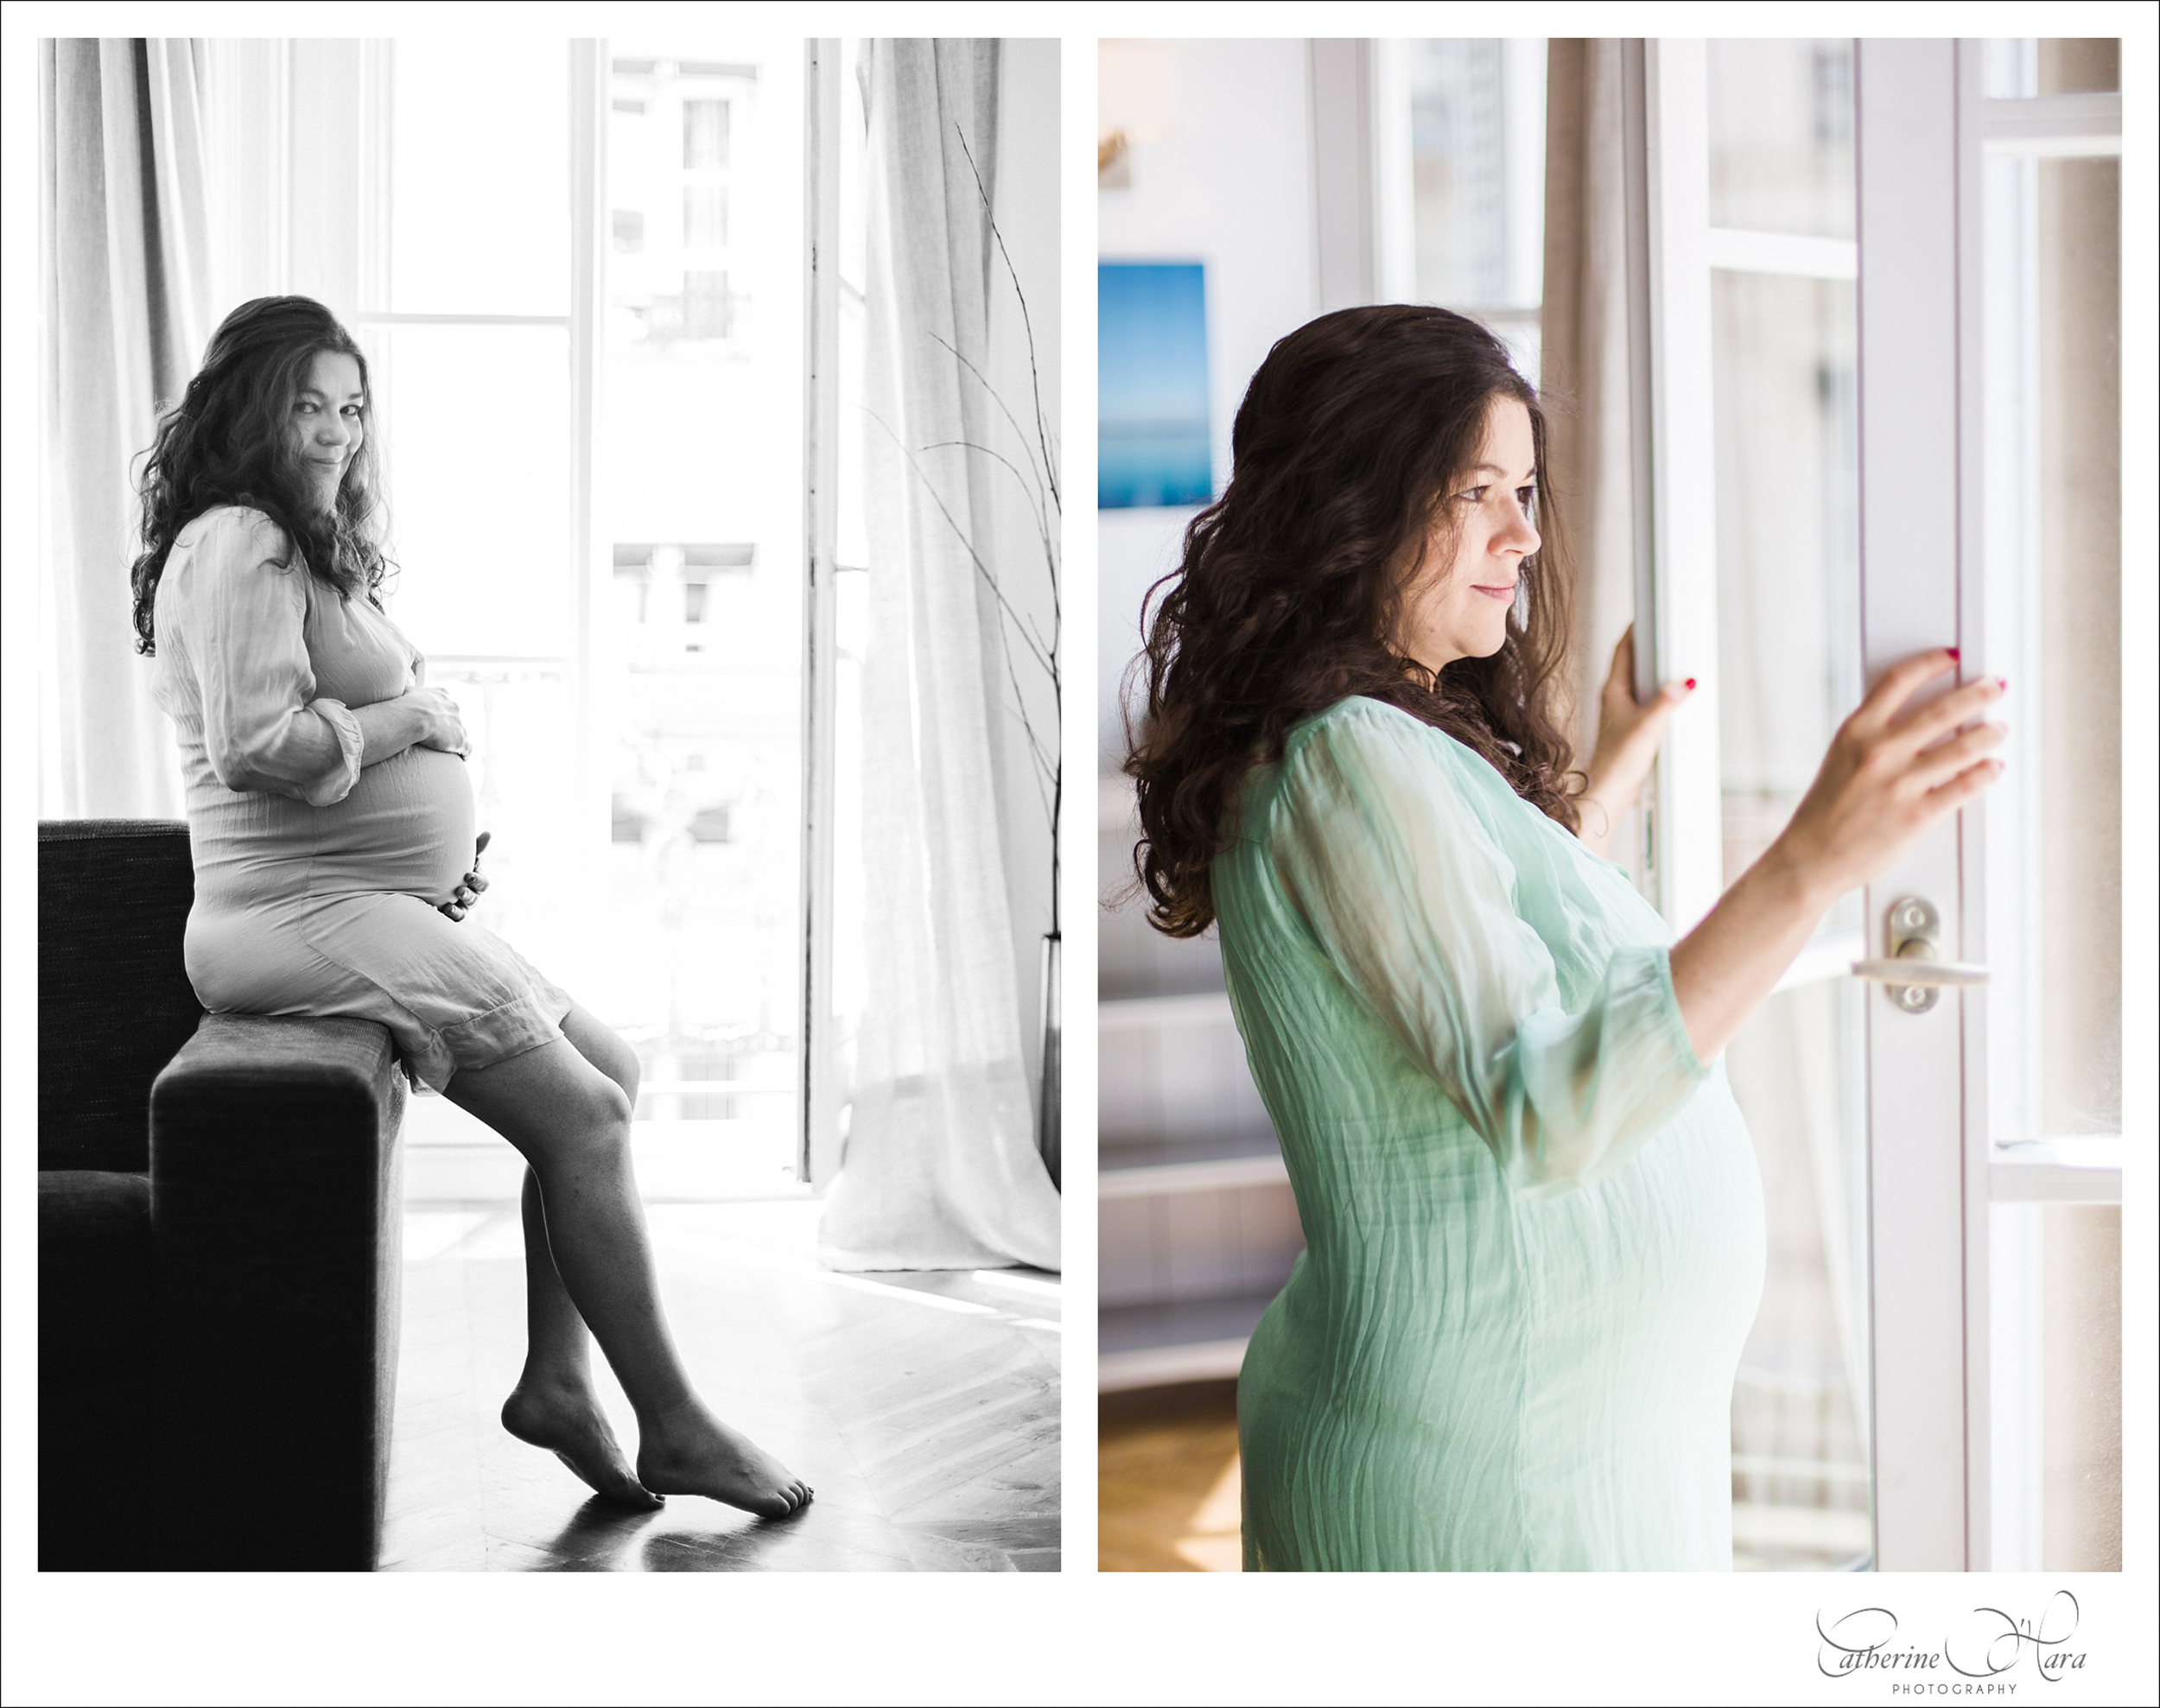 paris-photographer-maternity-shoot-03.jpg